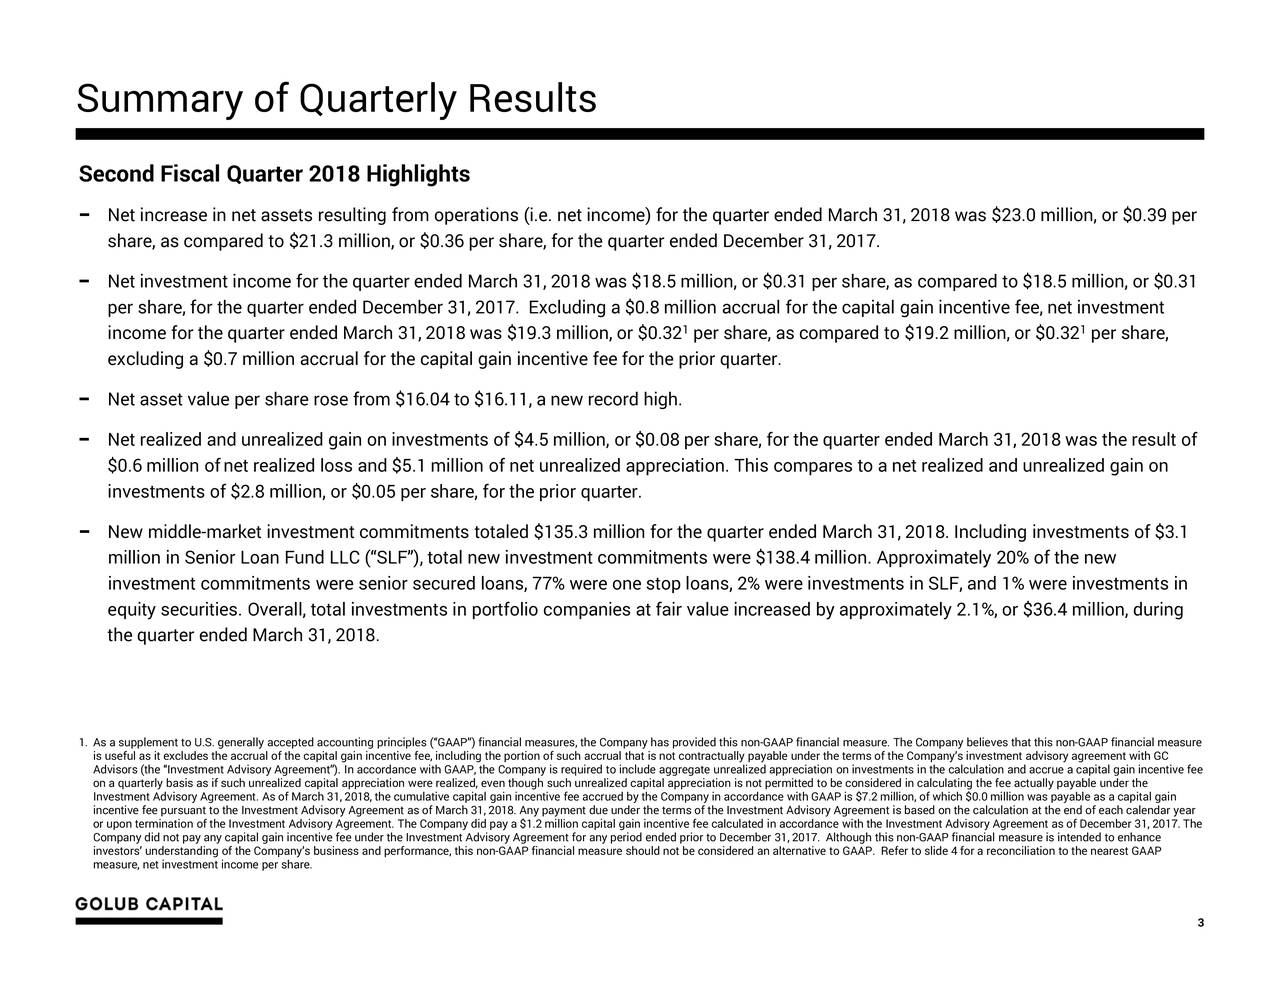 """Second Fiscal Quarter 2018 Highlights − Net increase in net assets resulting from operations (i.e. net income) for the quarter ended March 31, 2018 was $23.0 million, or $0.39 per share, as compared to $21.3 million, or $0.36 per share, for the quarter ended December 31, 2017. − Net investment income for the quarter ended March 31, 2018 was $18.5 million, or $0.31 per share, as compared to $18.5 million, or $0.31 per share, for the quarter ended December 31, 2017. Excluding a $0.8 million accrual for the capital gain incentive fee, net investment income for the quarter ended March 31, 2018 was $19.3 million, or $0.32 1per share, as compared to $19.2 million, or $0.32 per share, excluding a $0.7 million accrual for the capital gain incentive fee for the prior quarter. − Net asset value per share rose from $16.04 to $16.11, a new record high. − Net realized and unrealized gain on investments of $4.5 million, or $0.08 per share, for the quarter ended March 31, 2018 was the result of $0.6 million ofnet realized loss and $5.1 million of net unrealized appreciation. This compares to a net realized and unrealized gain on investments of $2.8 million, or $0.05 per share, for the prior quarter. − New middle-market investment commitments totaled $135.3 million for the quarter ended March 31, 2018. Including investments of $3.1 million in Senior Loan Fund LLC (""""SLF""""), total new investment commitments were $138.4 million. Approximately 20%of the new investment commitments were senior secured loans, 77% were one stop loans, 2% were investments in SLF, and 1% were investments in equity securities. Overall, total investments in portfolio companies at fair value increased by approximately 2.1%, or $36.4 million, during the quarter ended March 31, 2018. 1. As a supplement to U.S. generally accepted accounting principles (""""GAAP"""") financial measures, the Company has provided this non-GAAP financial measure. The Company believes that this non-GAAP financial measure is useful as it exclu"""